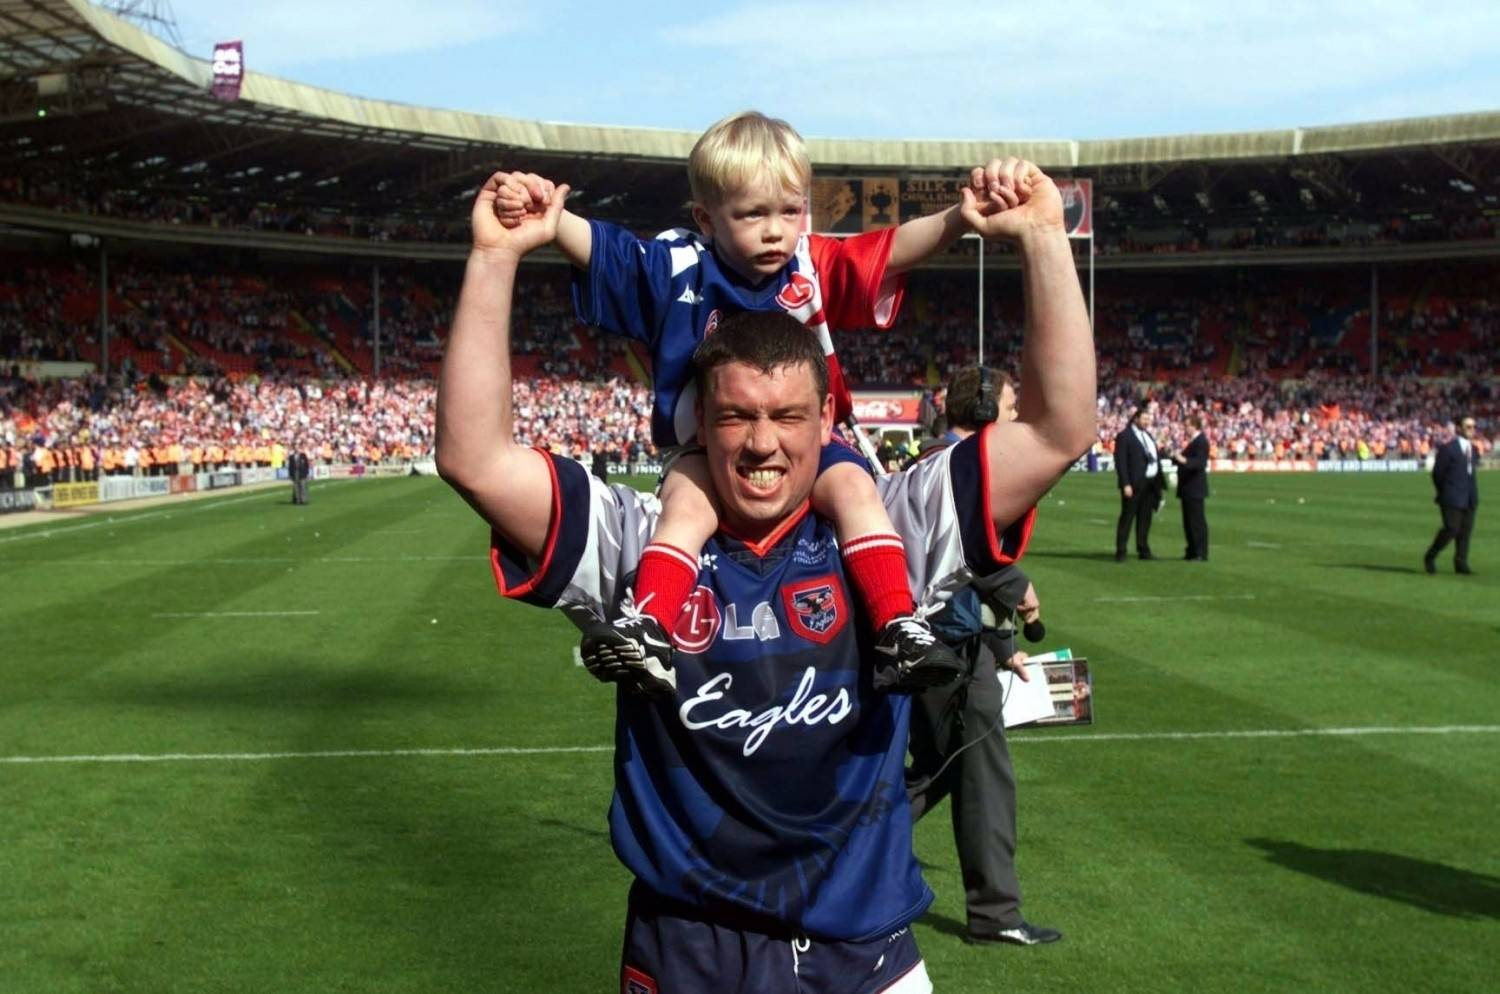 1998 Challenge Cup Final: Sheffield Eagles shock Wigan Warriors